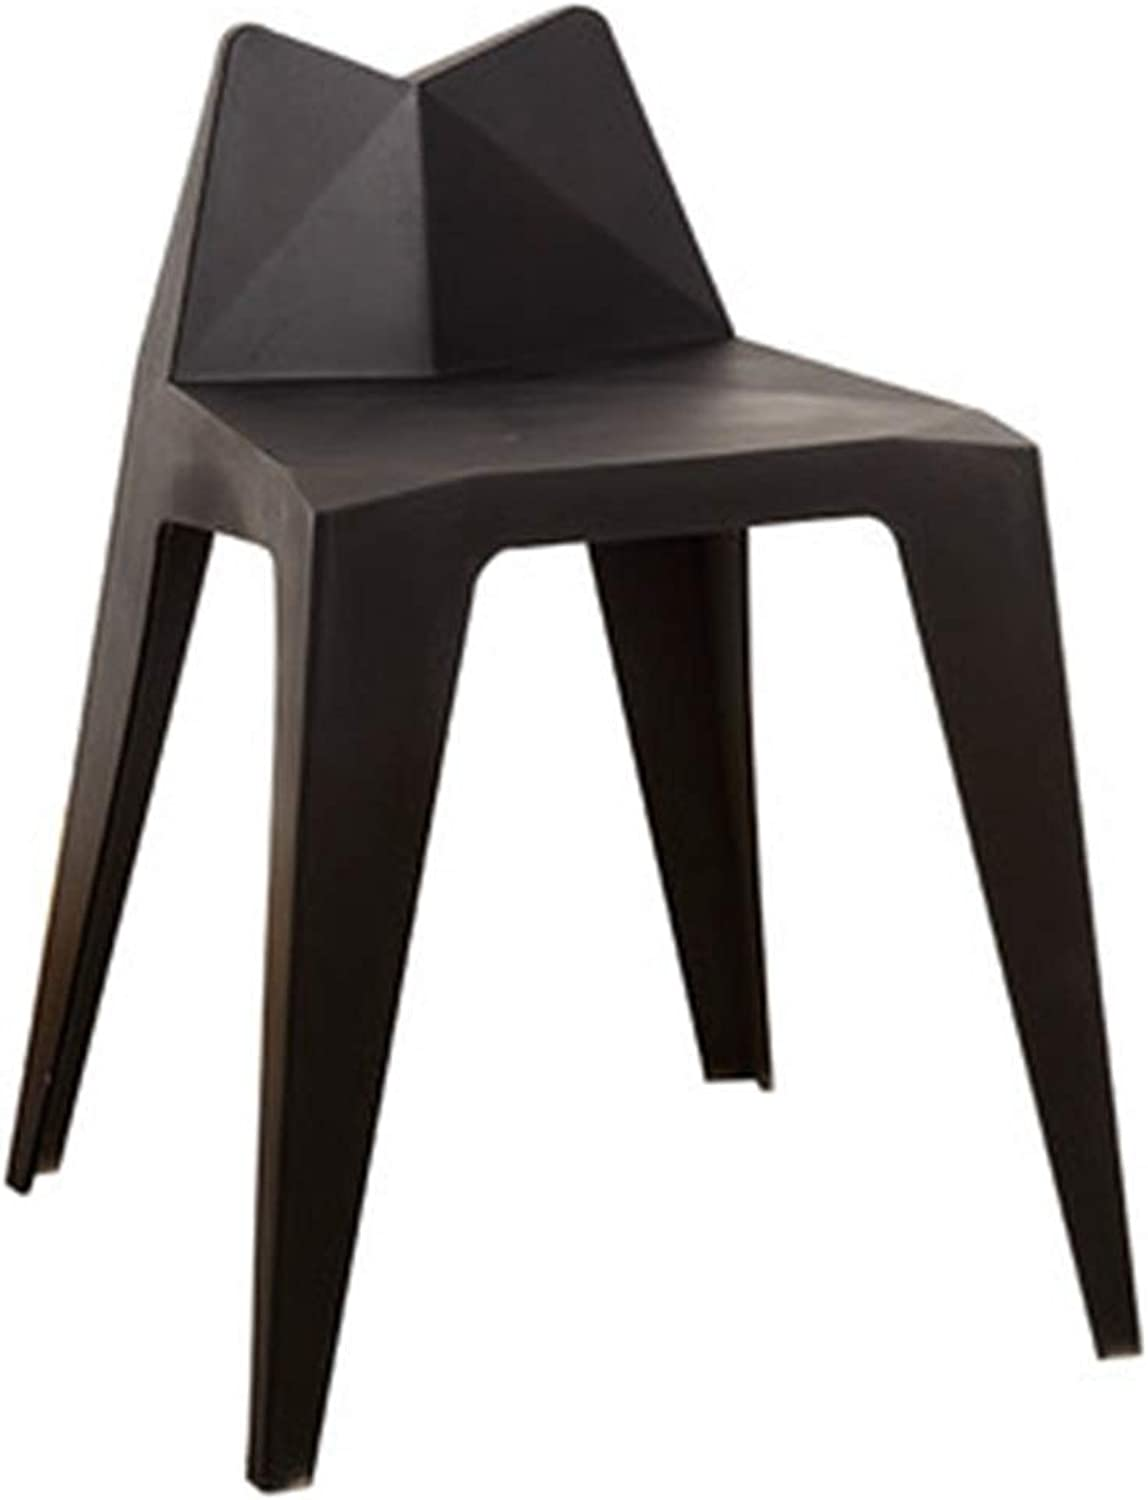 Stools Stool Plastic Chair Home Living Room High Stool Adult Dining Chair Entry Door for shoes Bench Bedroom Makeup Stool (color   Black, Size   58  35  34cm)